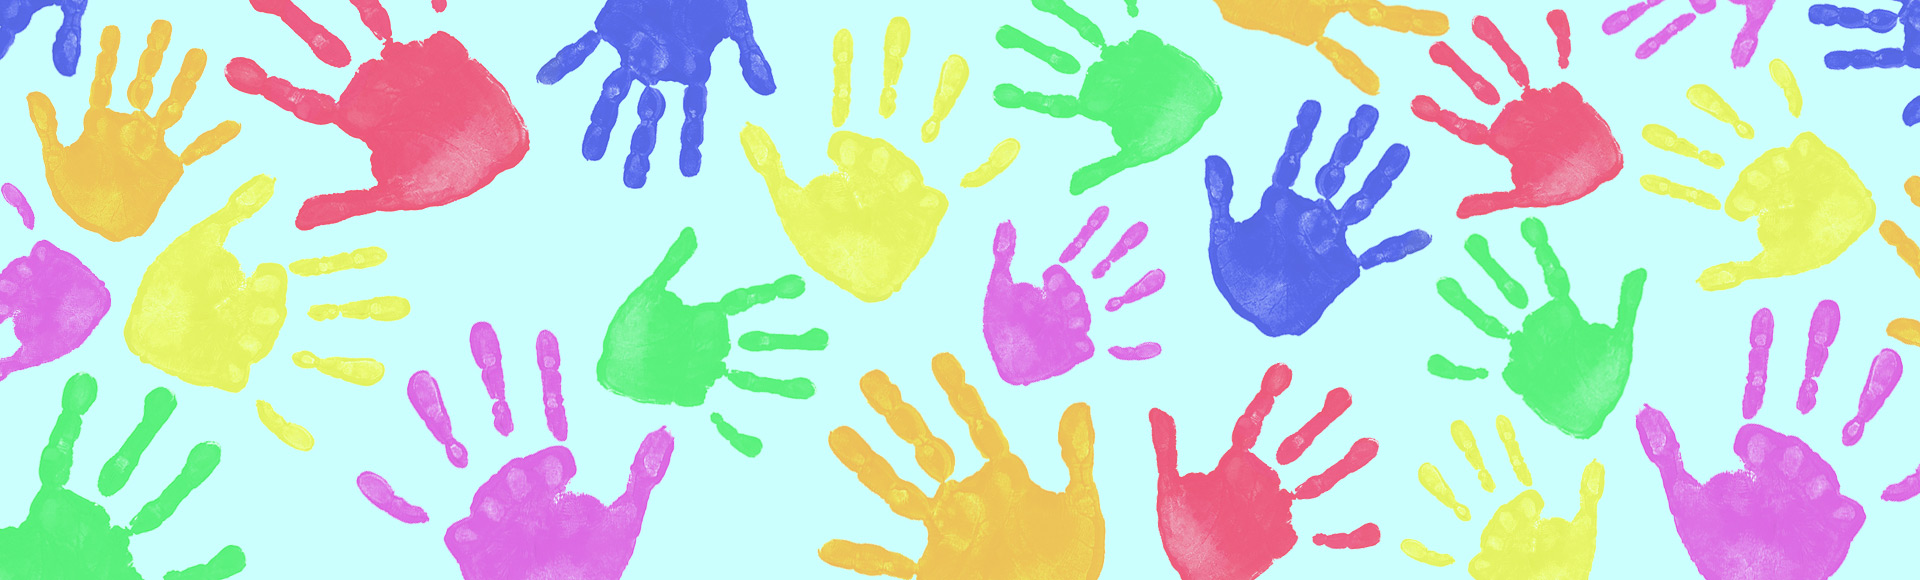 painted hands background